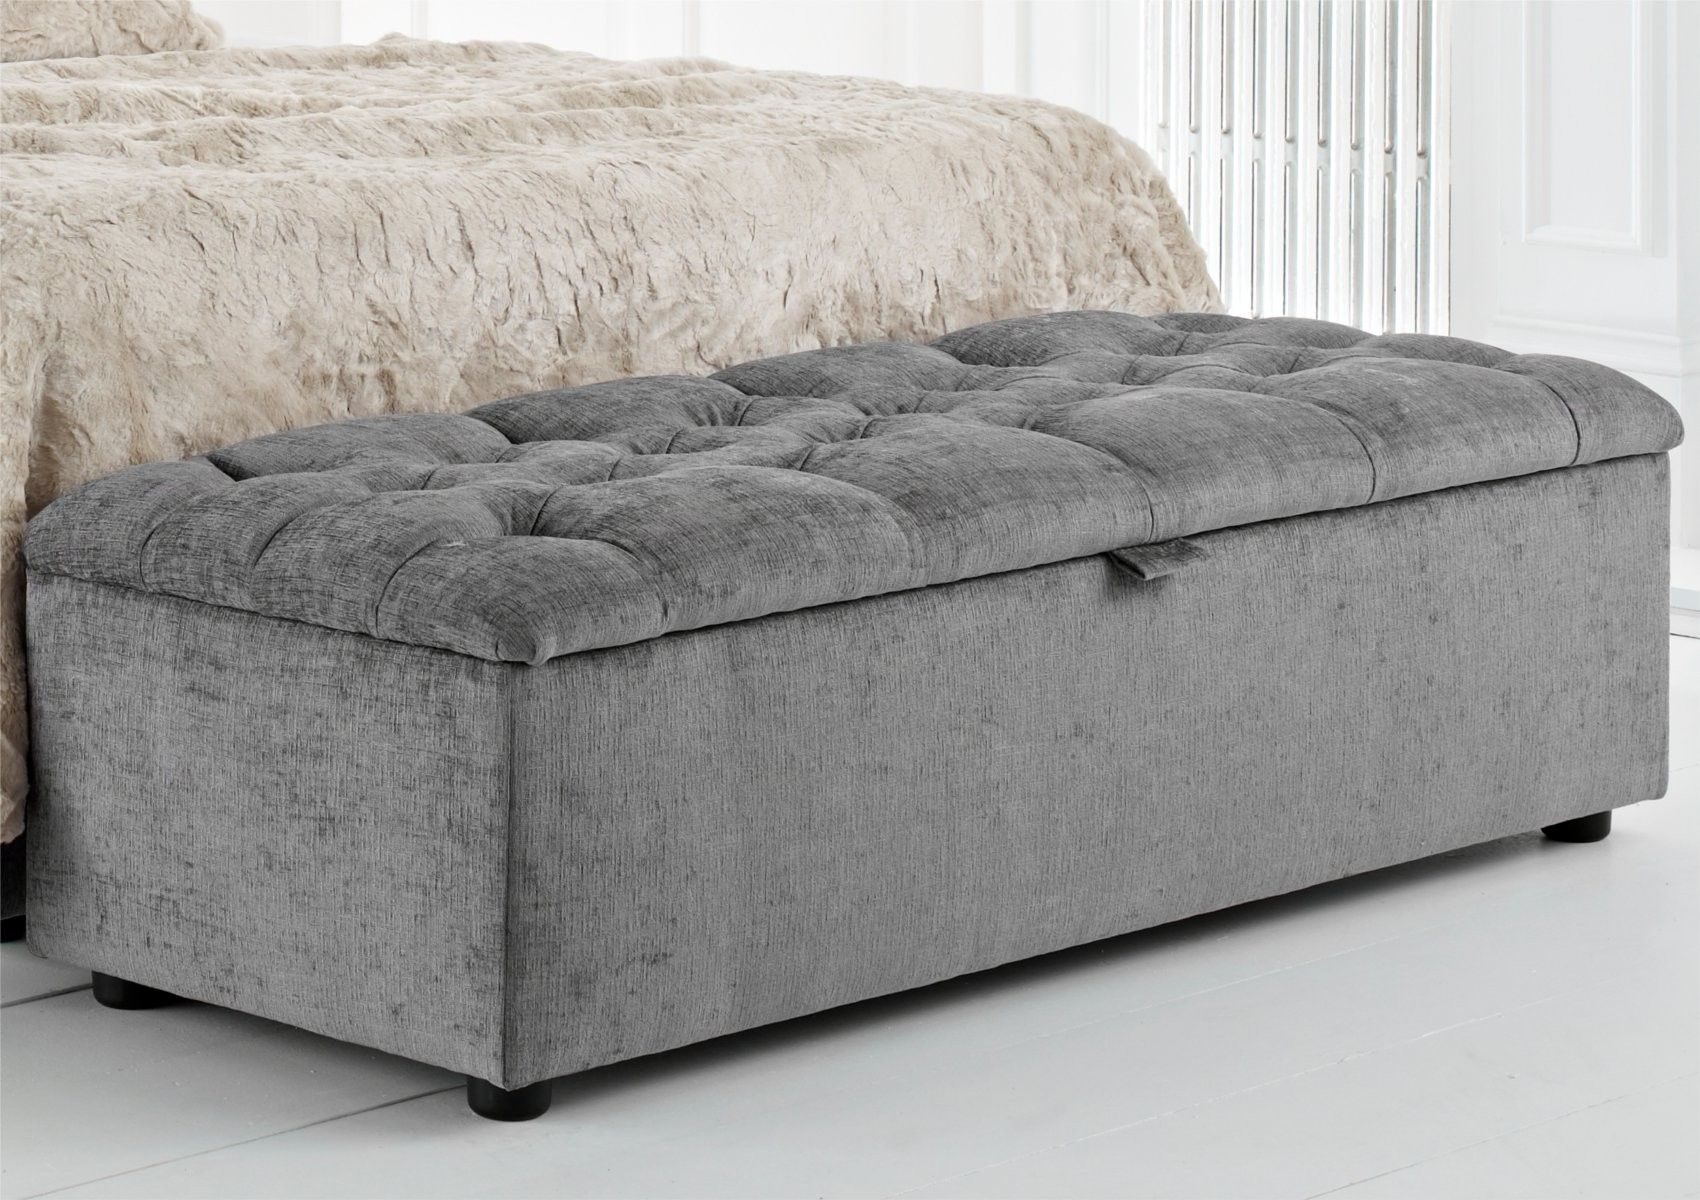 bedroom chair with blanket exercise ball cover ascot tufted upholstered box boxes in